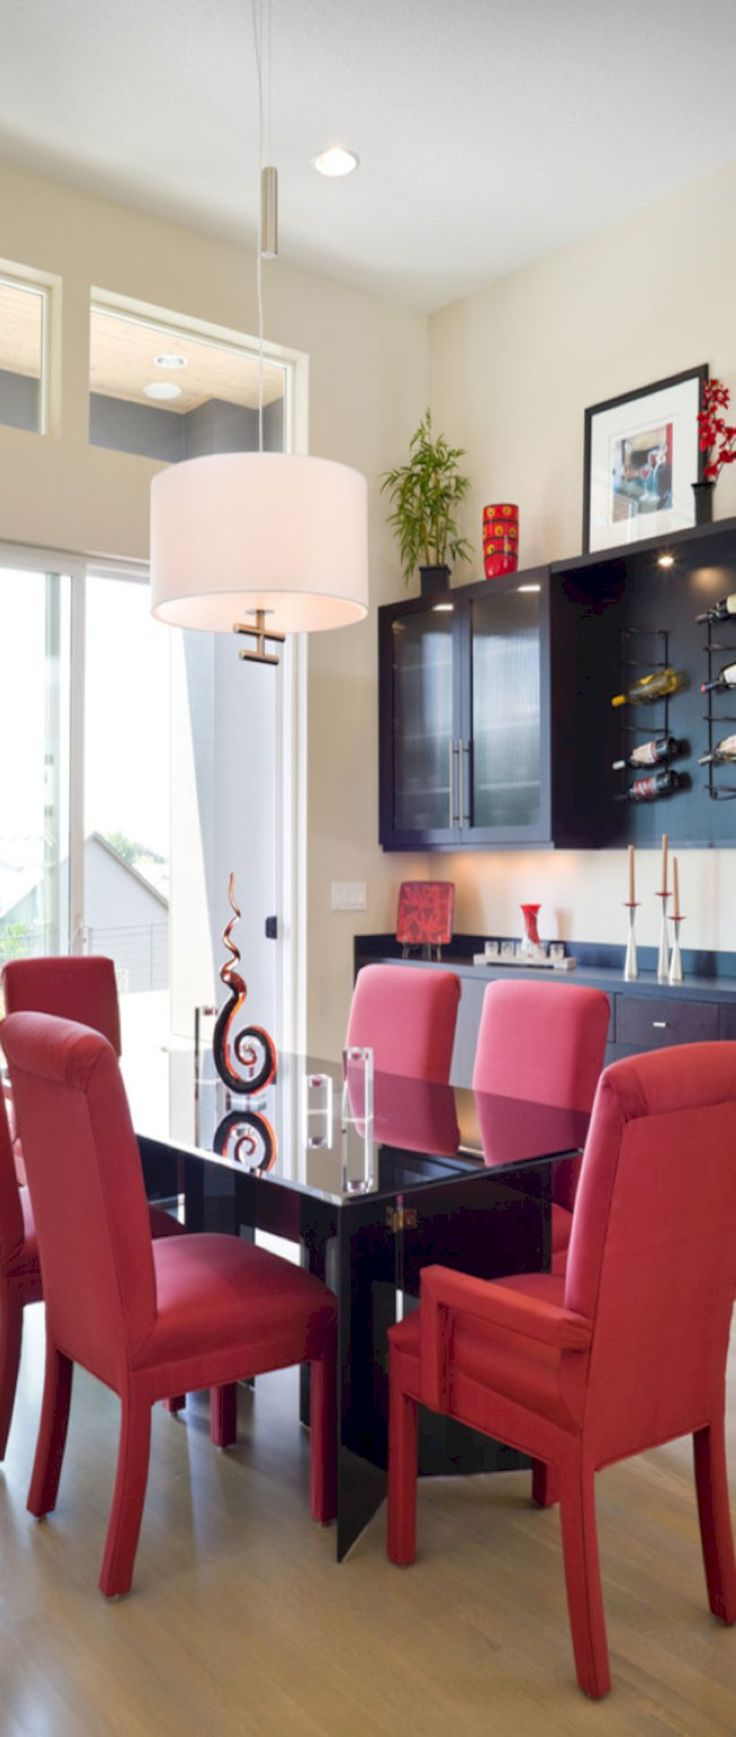 Red accent chairs - 53 Modern Red Accent Chair Dining Ideas